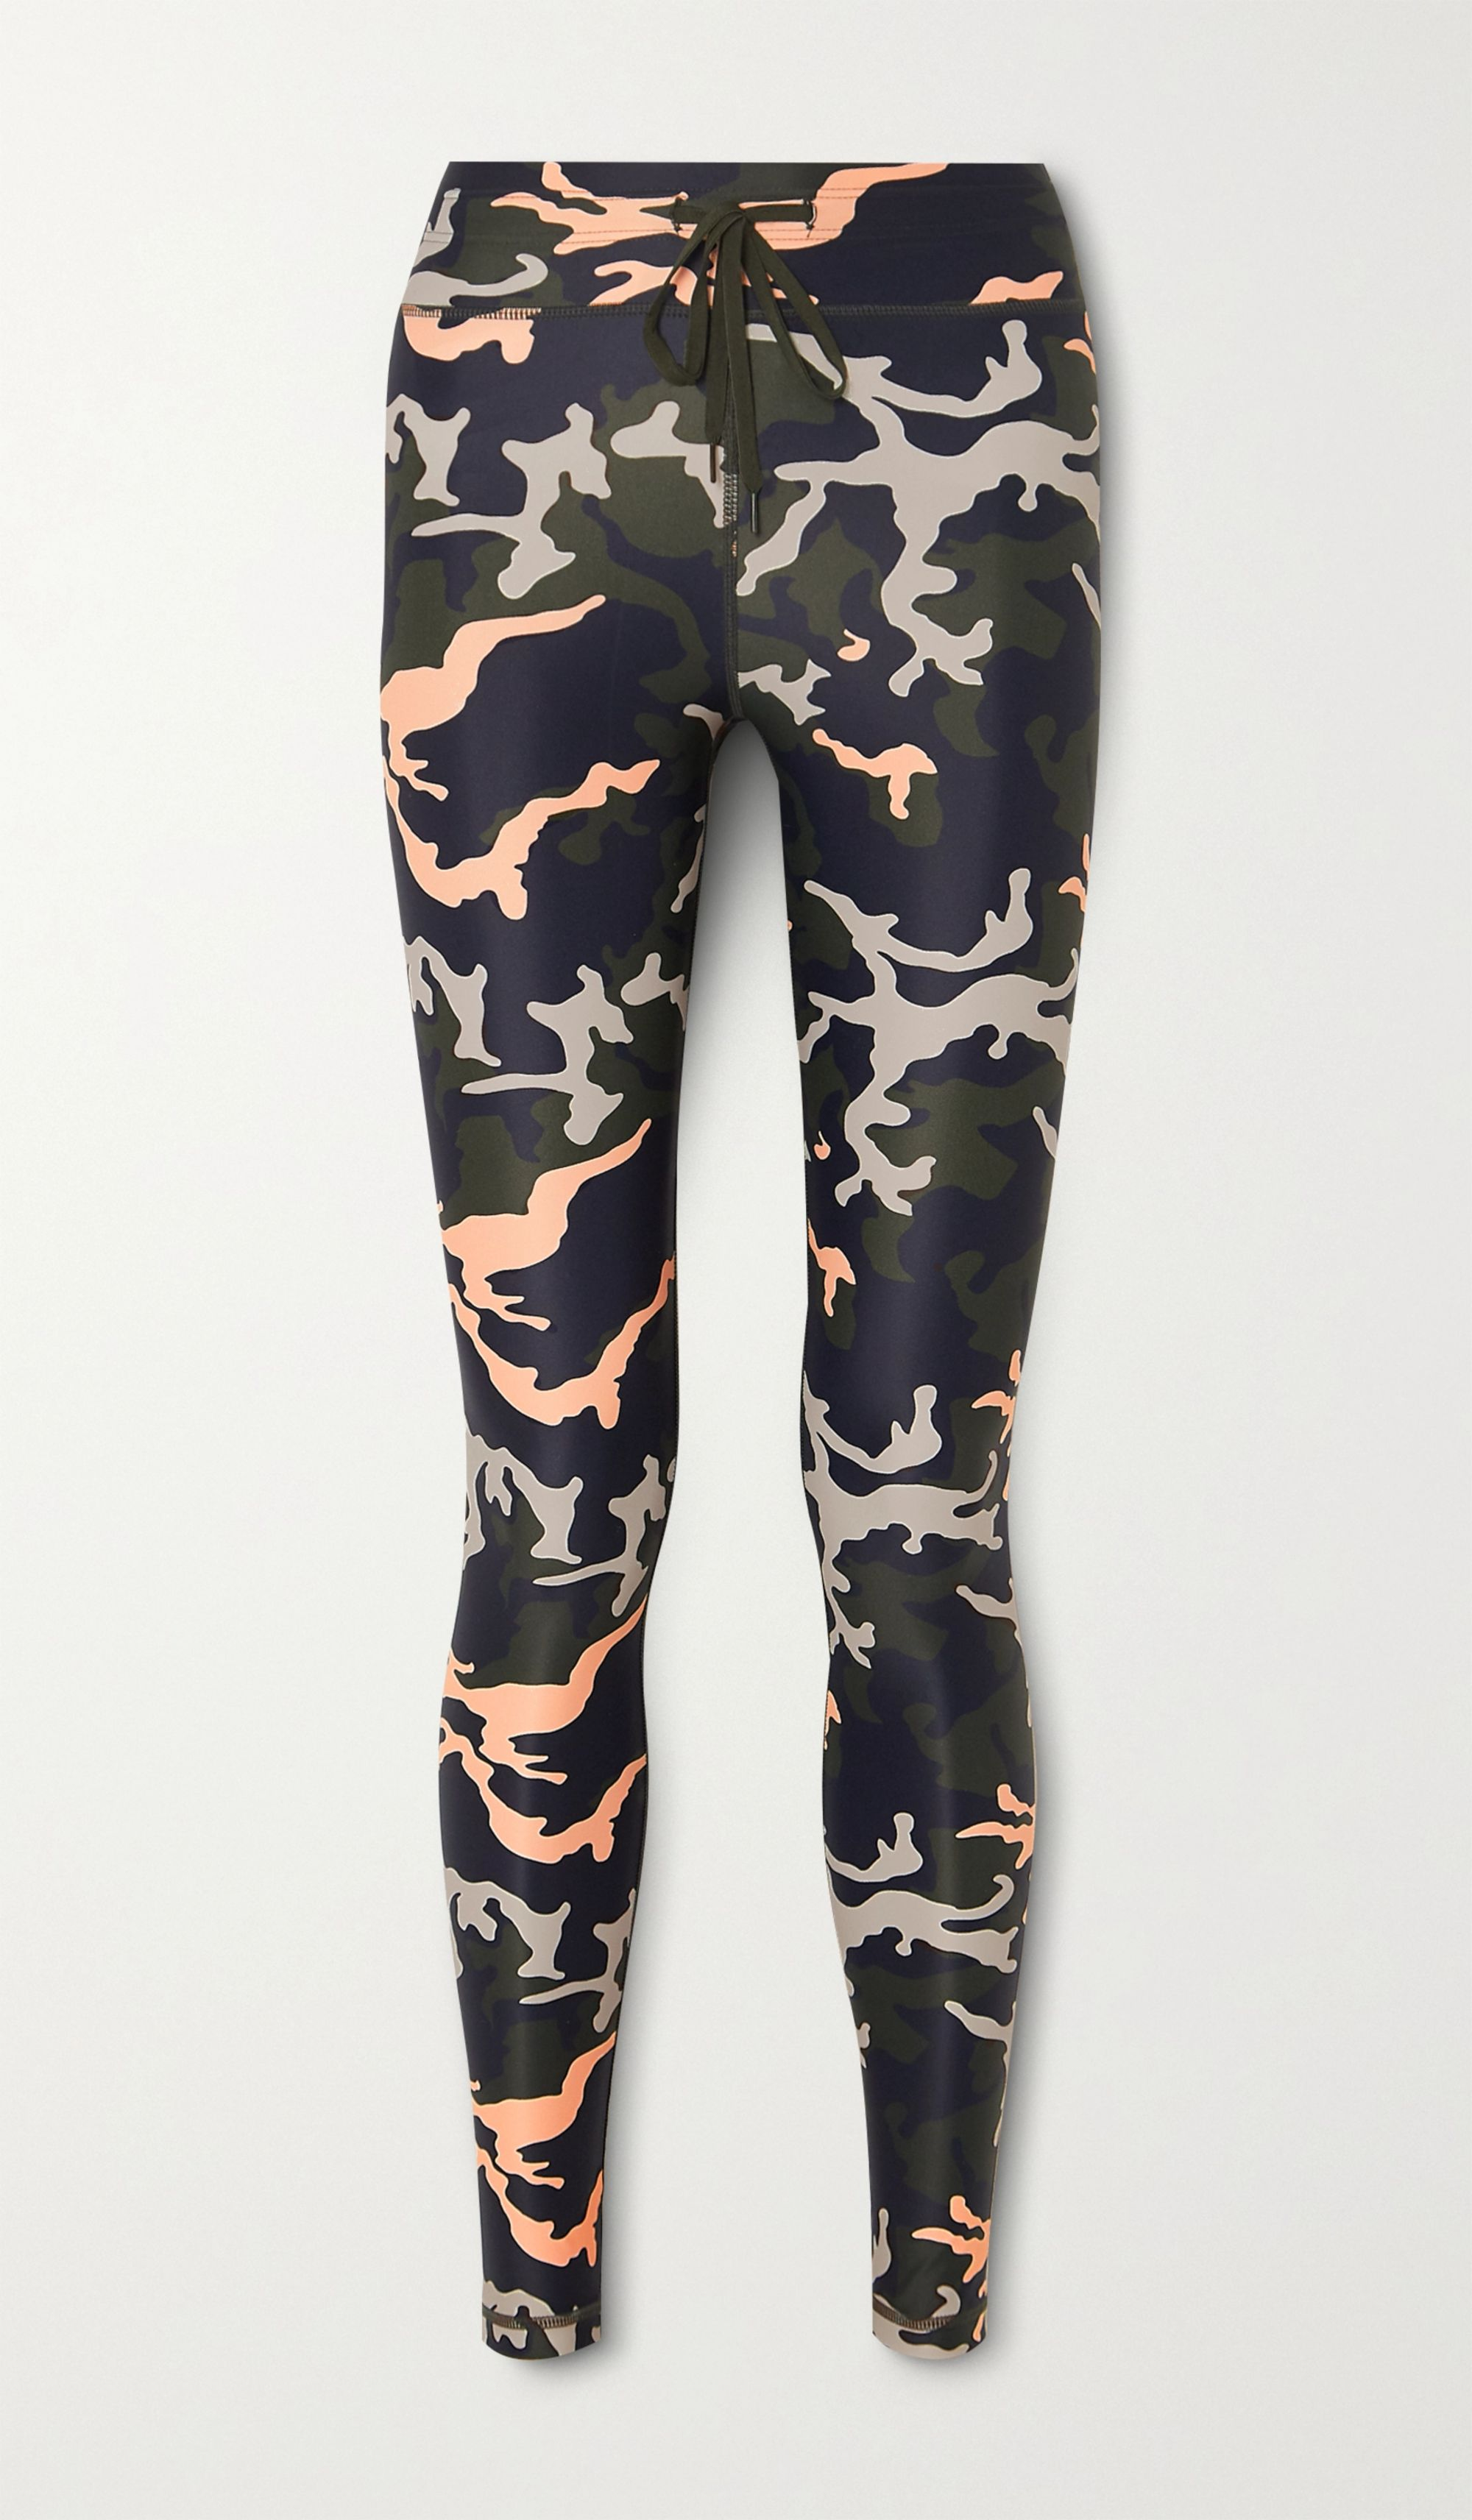 The Upside NYC camouflage-print stretch leggings